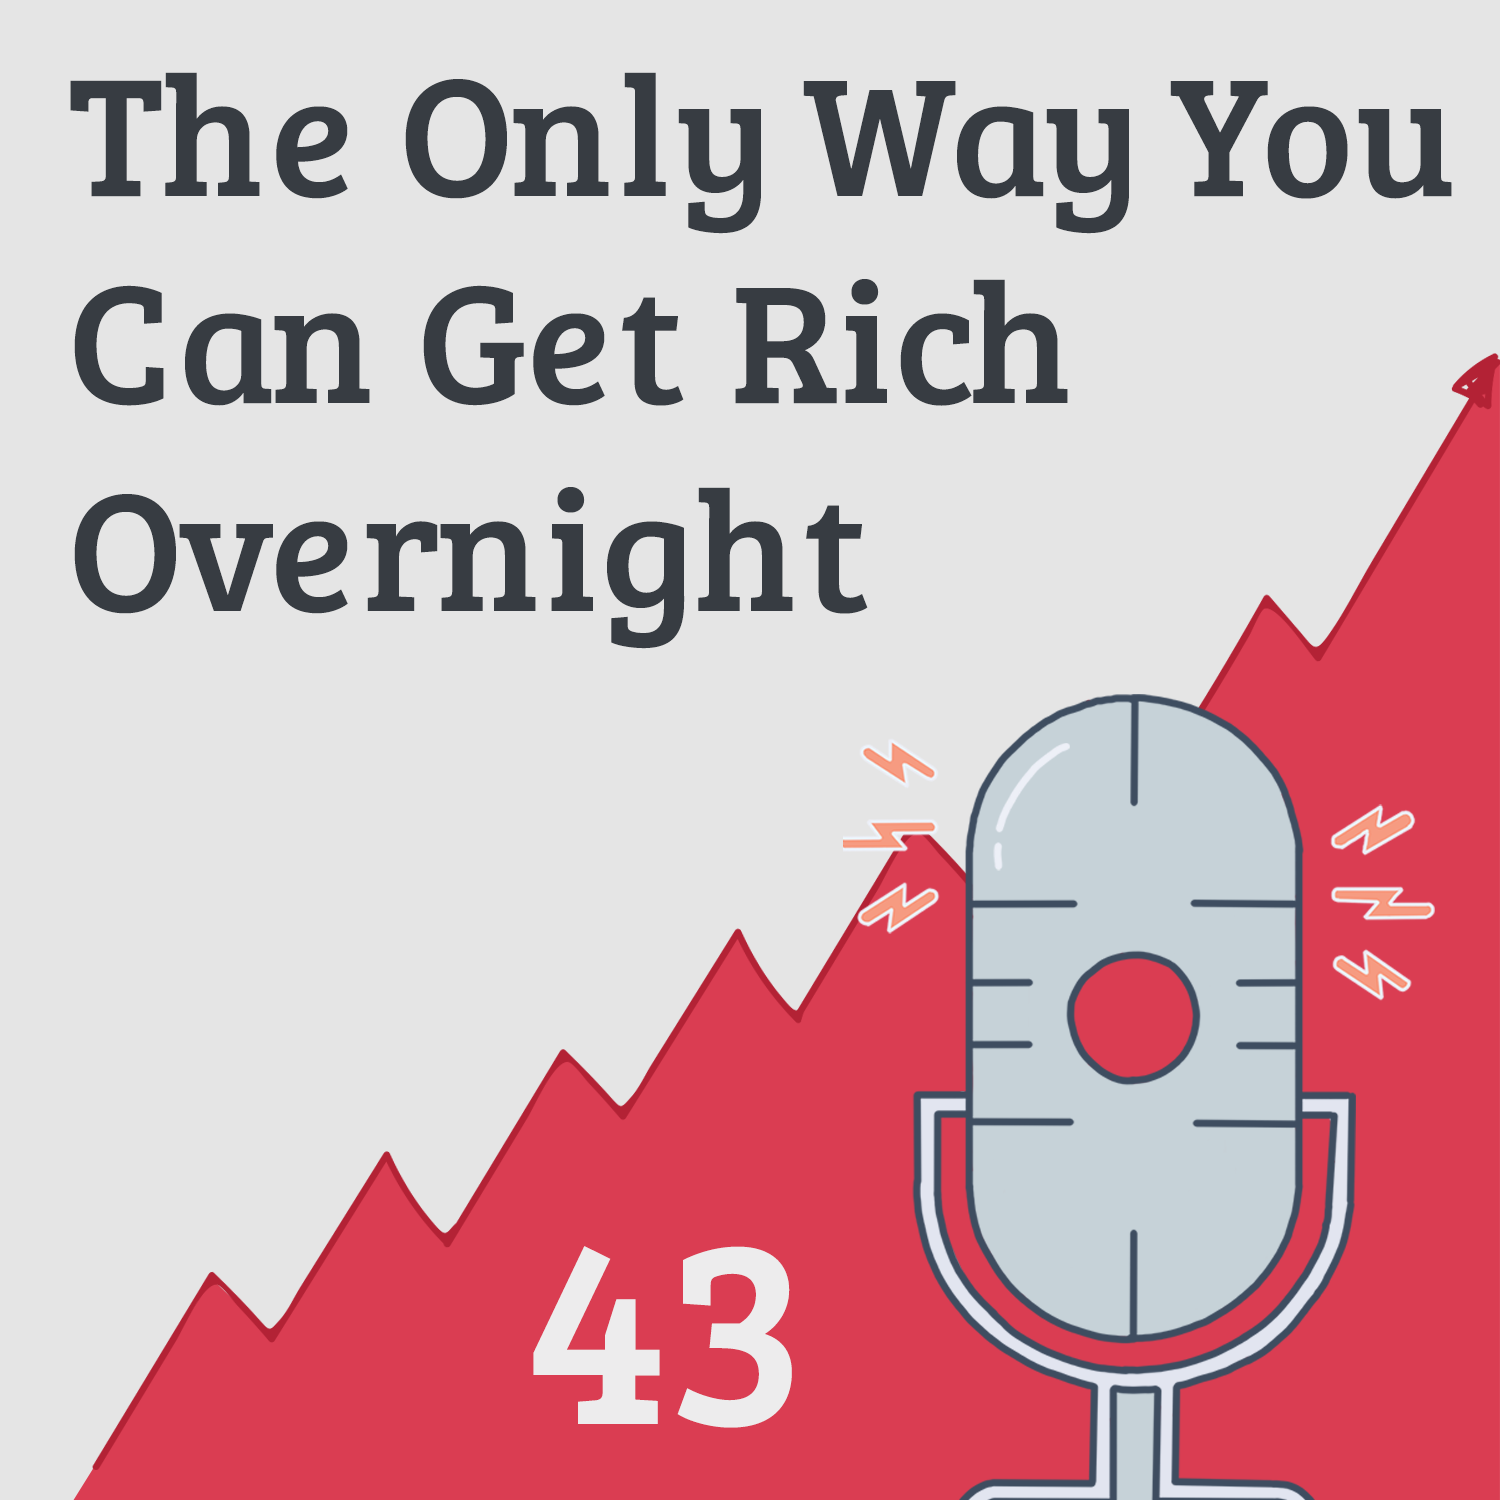 The Only Way You Can Get Rich Overnight